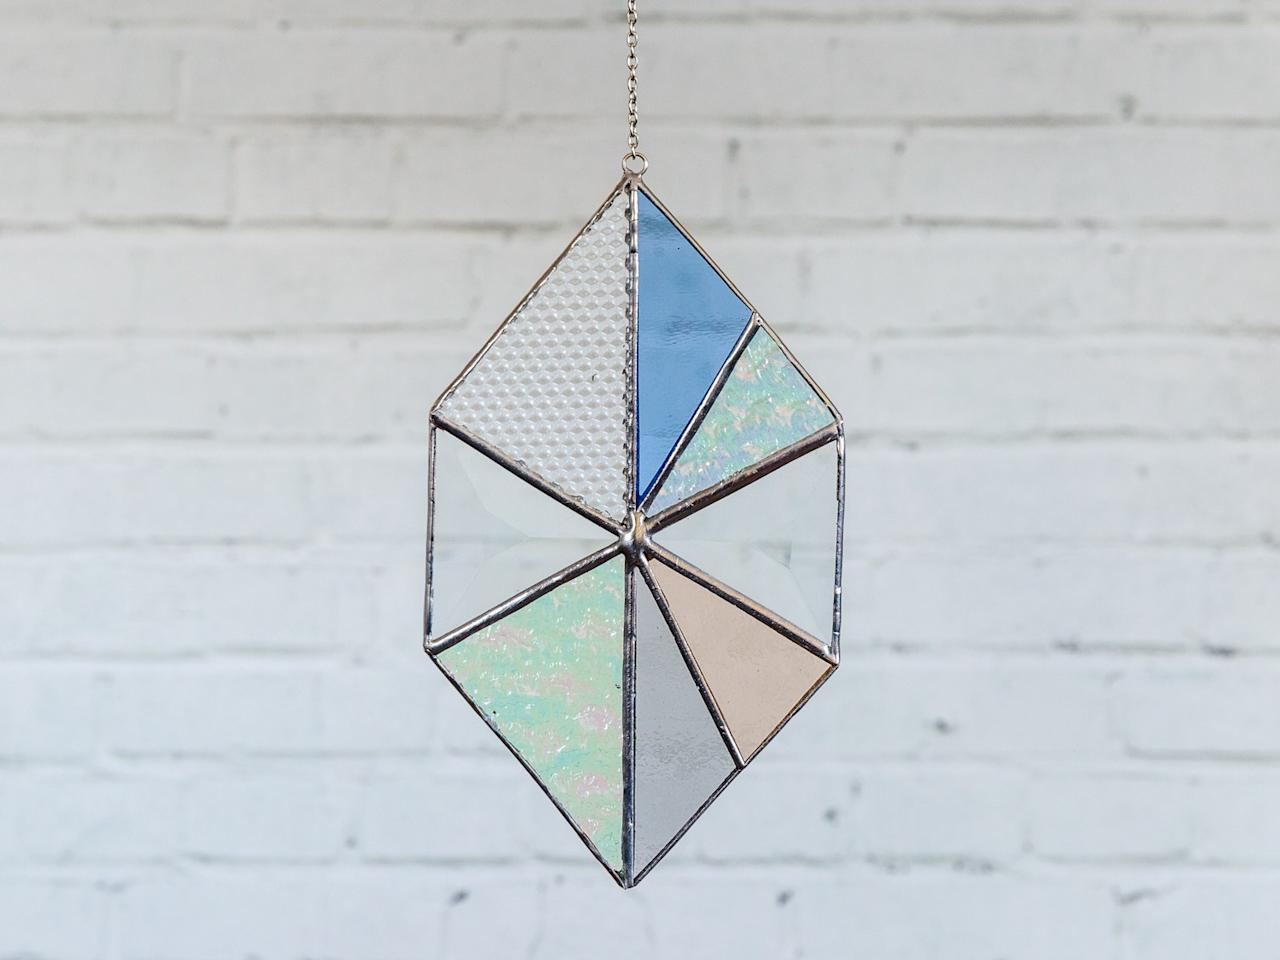 "Stylist turned artist Janel Foo makes all her pieces by hand in L.A. <a rel=""nofollow"" href=""http://www.janelfoo.com/shop/pirouette?category=suncatchers"" rel=""nofollow"">SHOP NOW</a>: 6"" x 3.5"" Pirouette Suncatcher by Janel Foo, $72, janelfoo.com"